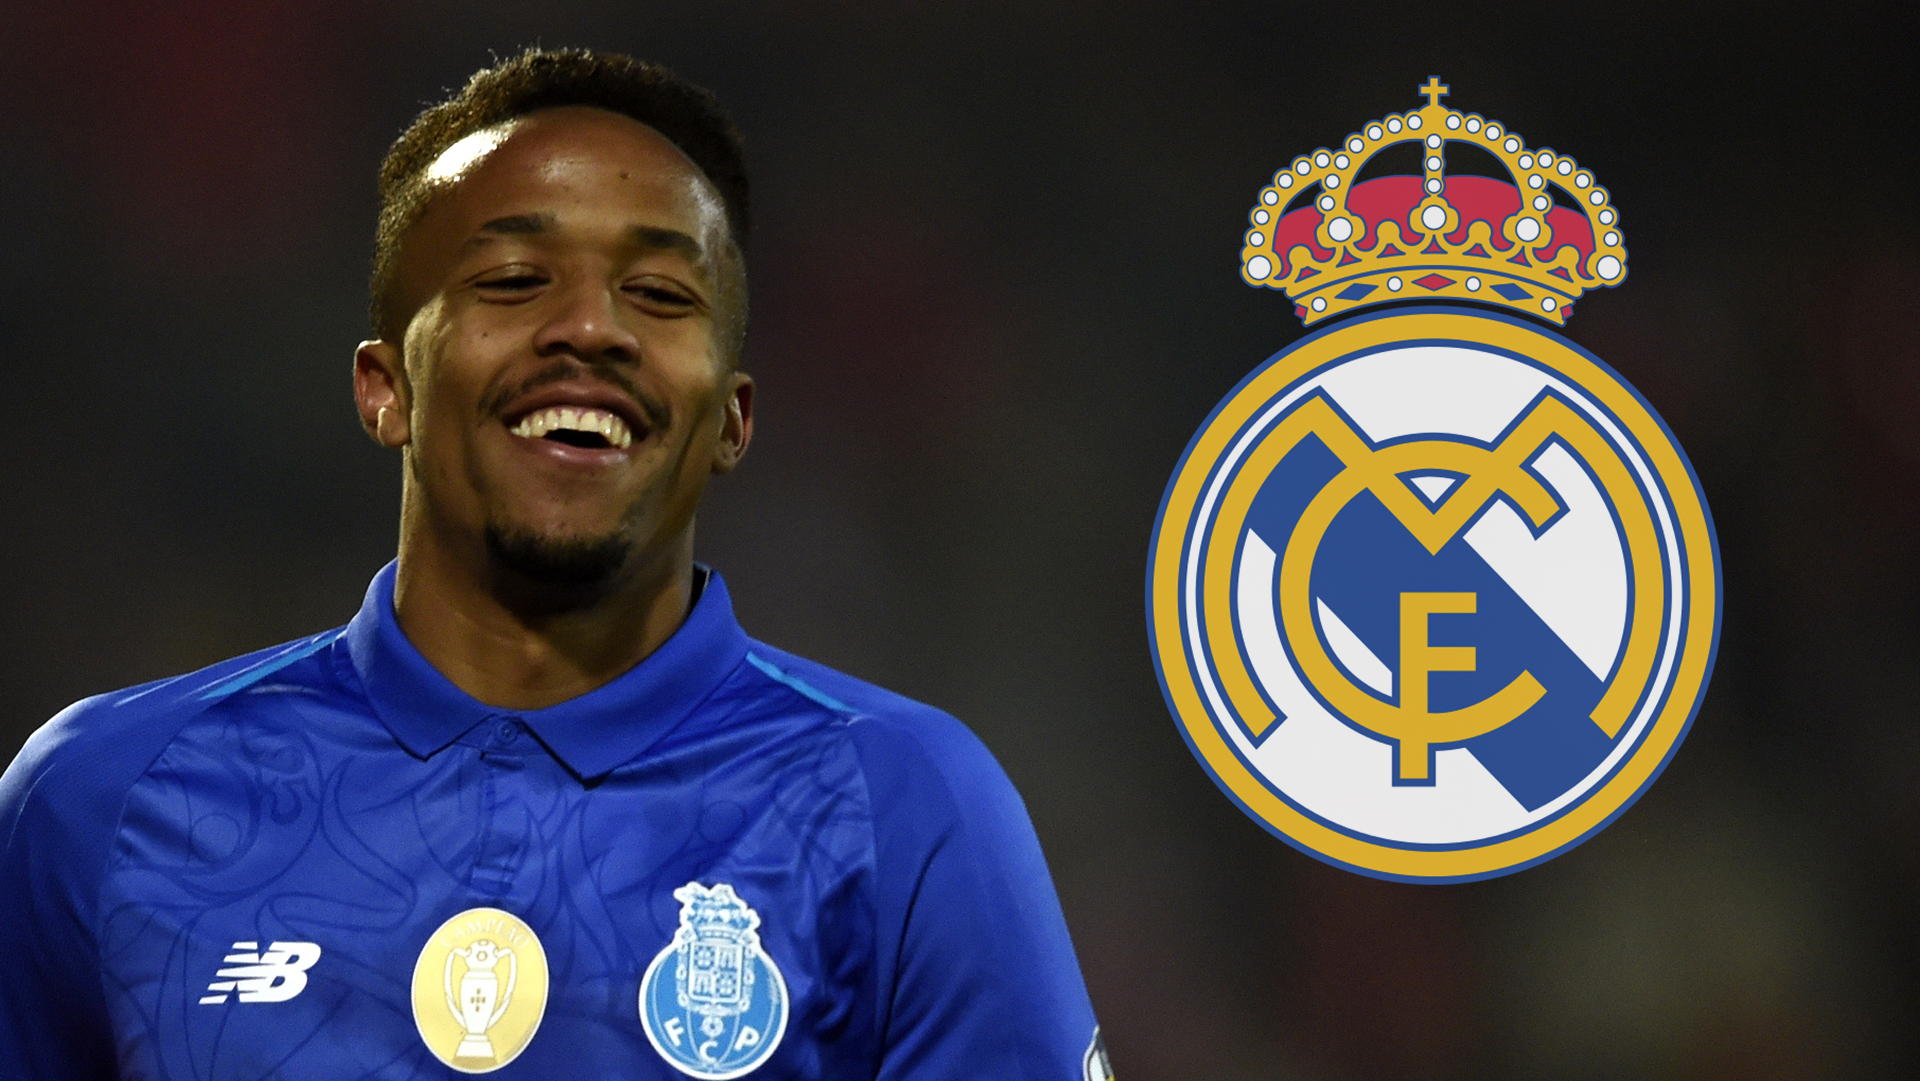 Real Madrid Announce Eder Militao As Zinedine Zidane's